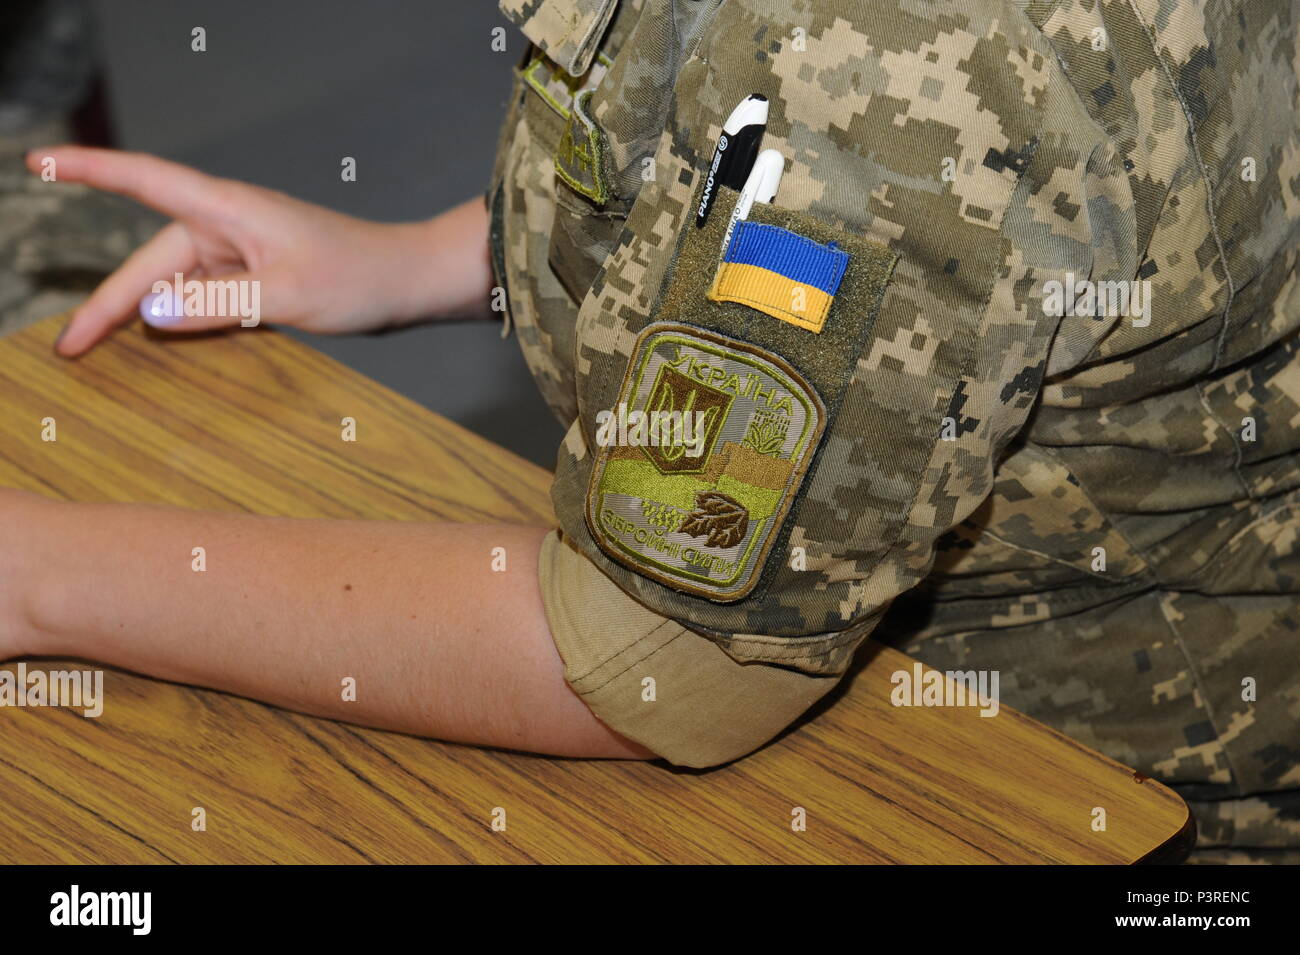 The Unit Patch Of The Armed Forces Of Ukraine On The Sleeve Of 1st Lt Bogdana Tverdokhlib Instructor Of The Ukrainian 169th Training Center Medical Sustainment Class Viper Pit 421st Medical Battalion